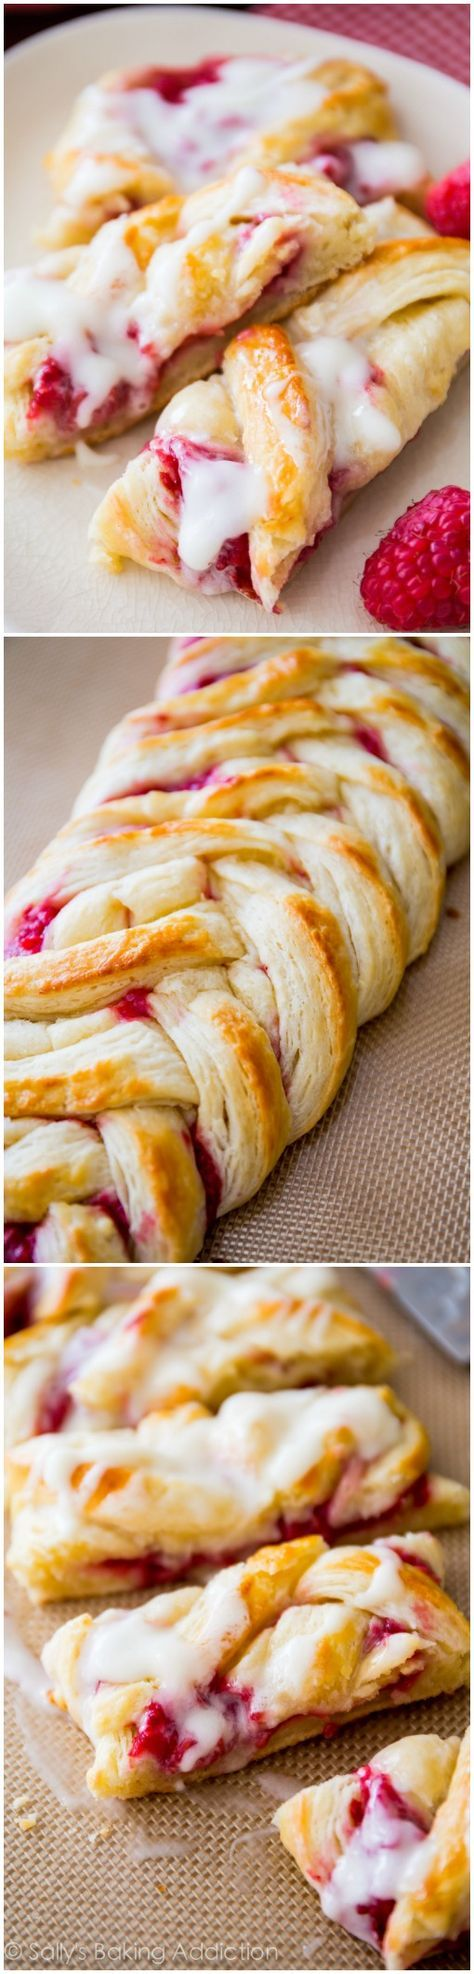 Homemade Raspberry Danish Tutorial and Recipe-- I love this flaky, buttery, fruity pastry recipe! Recipe on sallysbakingaddiction.com